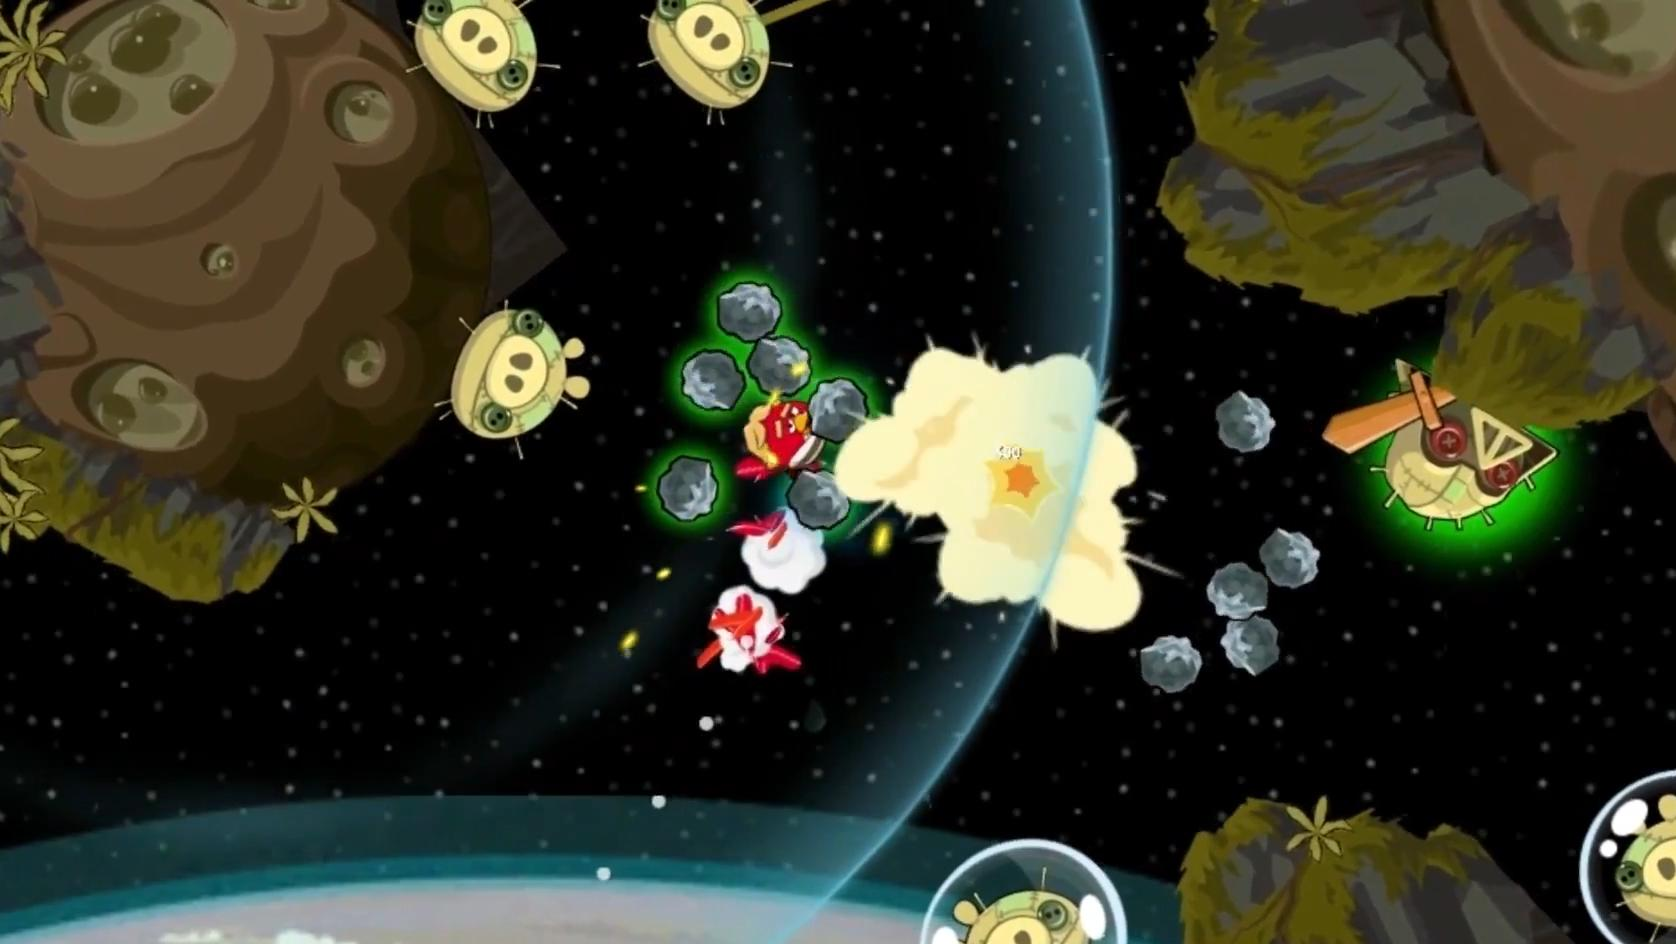 Screenshot 3 of angry birds star wars path of the jedi episode trailer